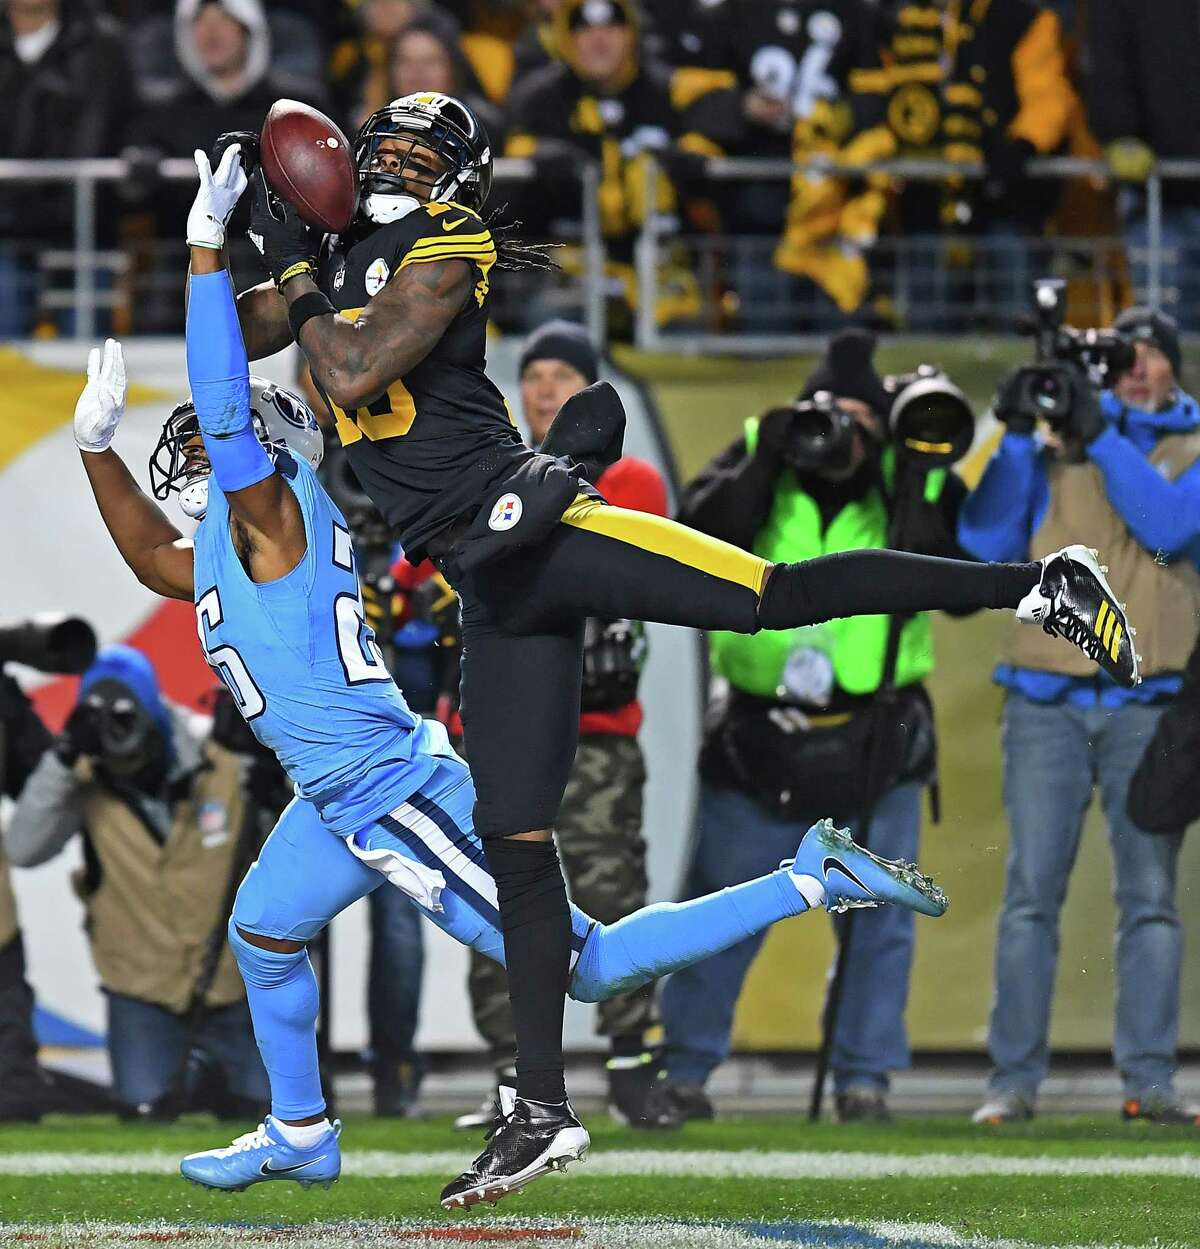 PITTSBURGH, PA - NOVEMBER 16: Martavis Bryant #10 of the Pittsburgh Steelers cannot come up with a catch while being defended by Logan Ryan #26 of the Tennessee Titans in the first half during the game at Heinz Field on November 16, 2017 in Pittsburgh, Pennsylvania. (Photo by Joe Sargent/Getty Images) *** BESTPIX *** ORG XMIT: 700070743